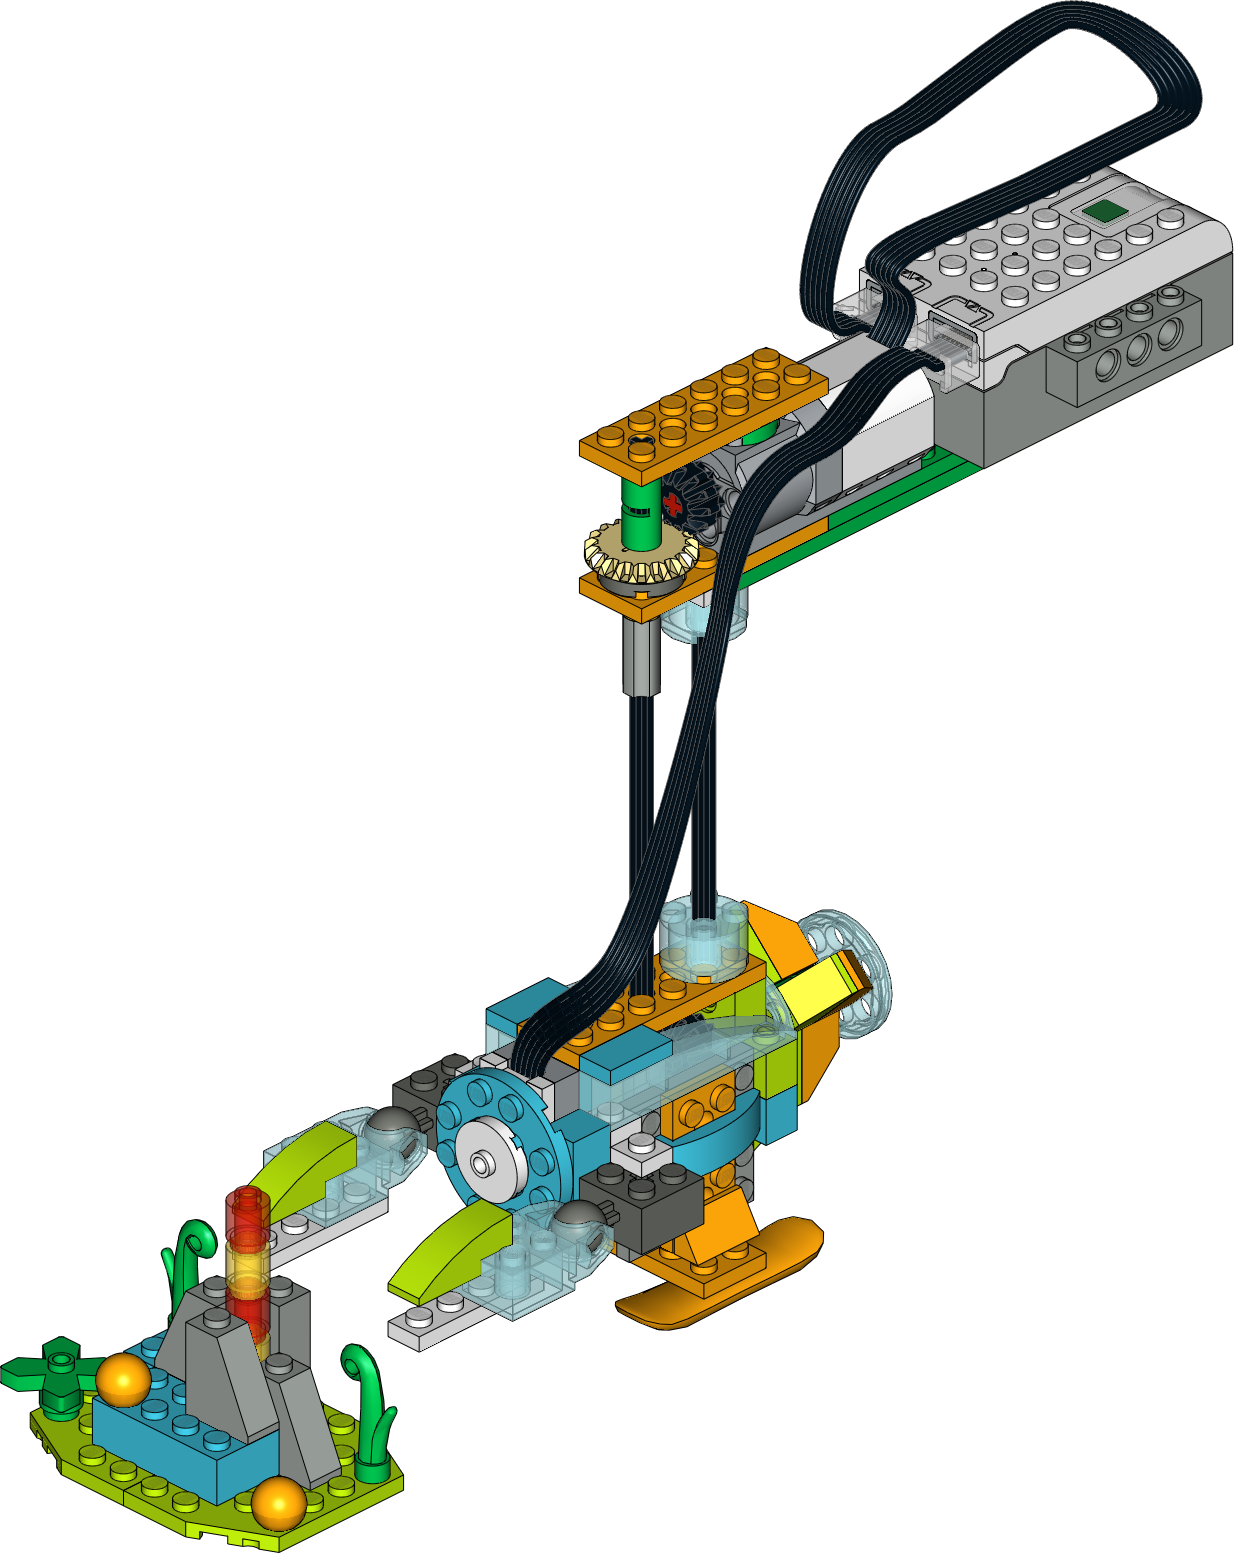 Bathyscaphe Lego Wedo 2 0 Citycamp Wedo Course This Construction Presents A Model Of A Bathyscaphe Which Is A Free Diving S Lego Wedo Lego Lego Activities